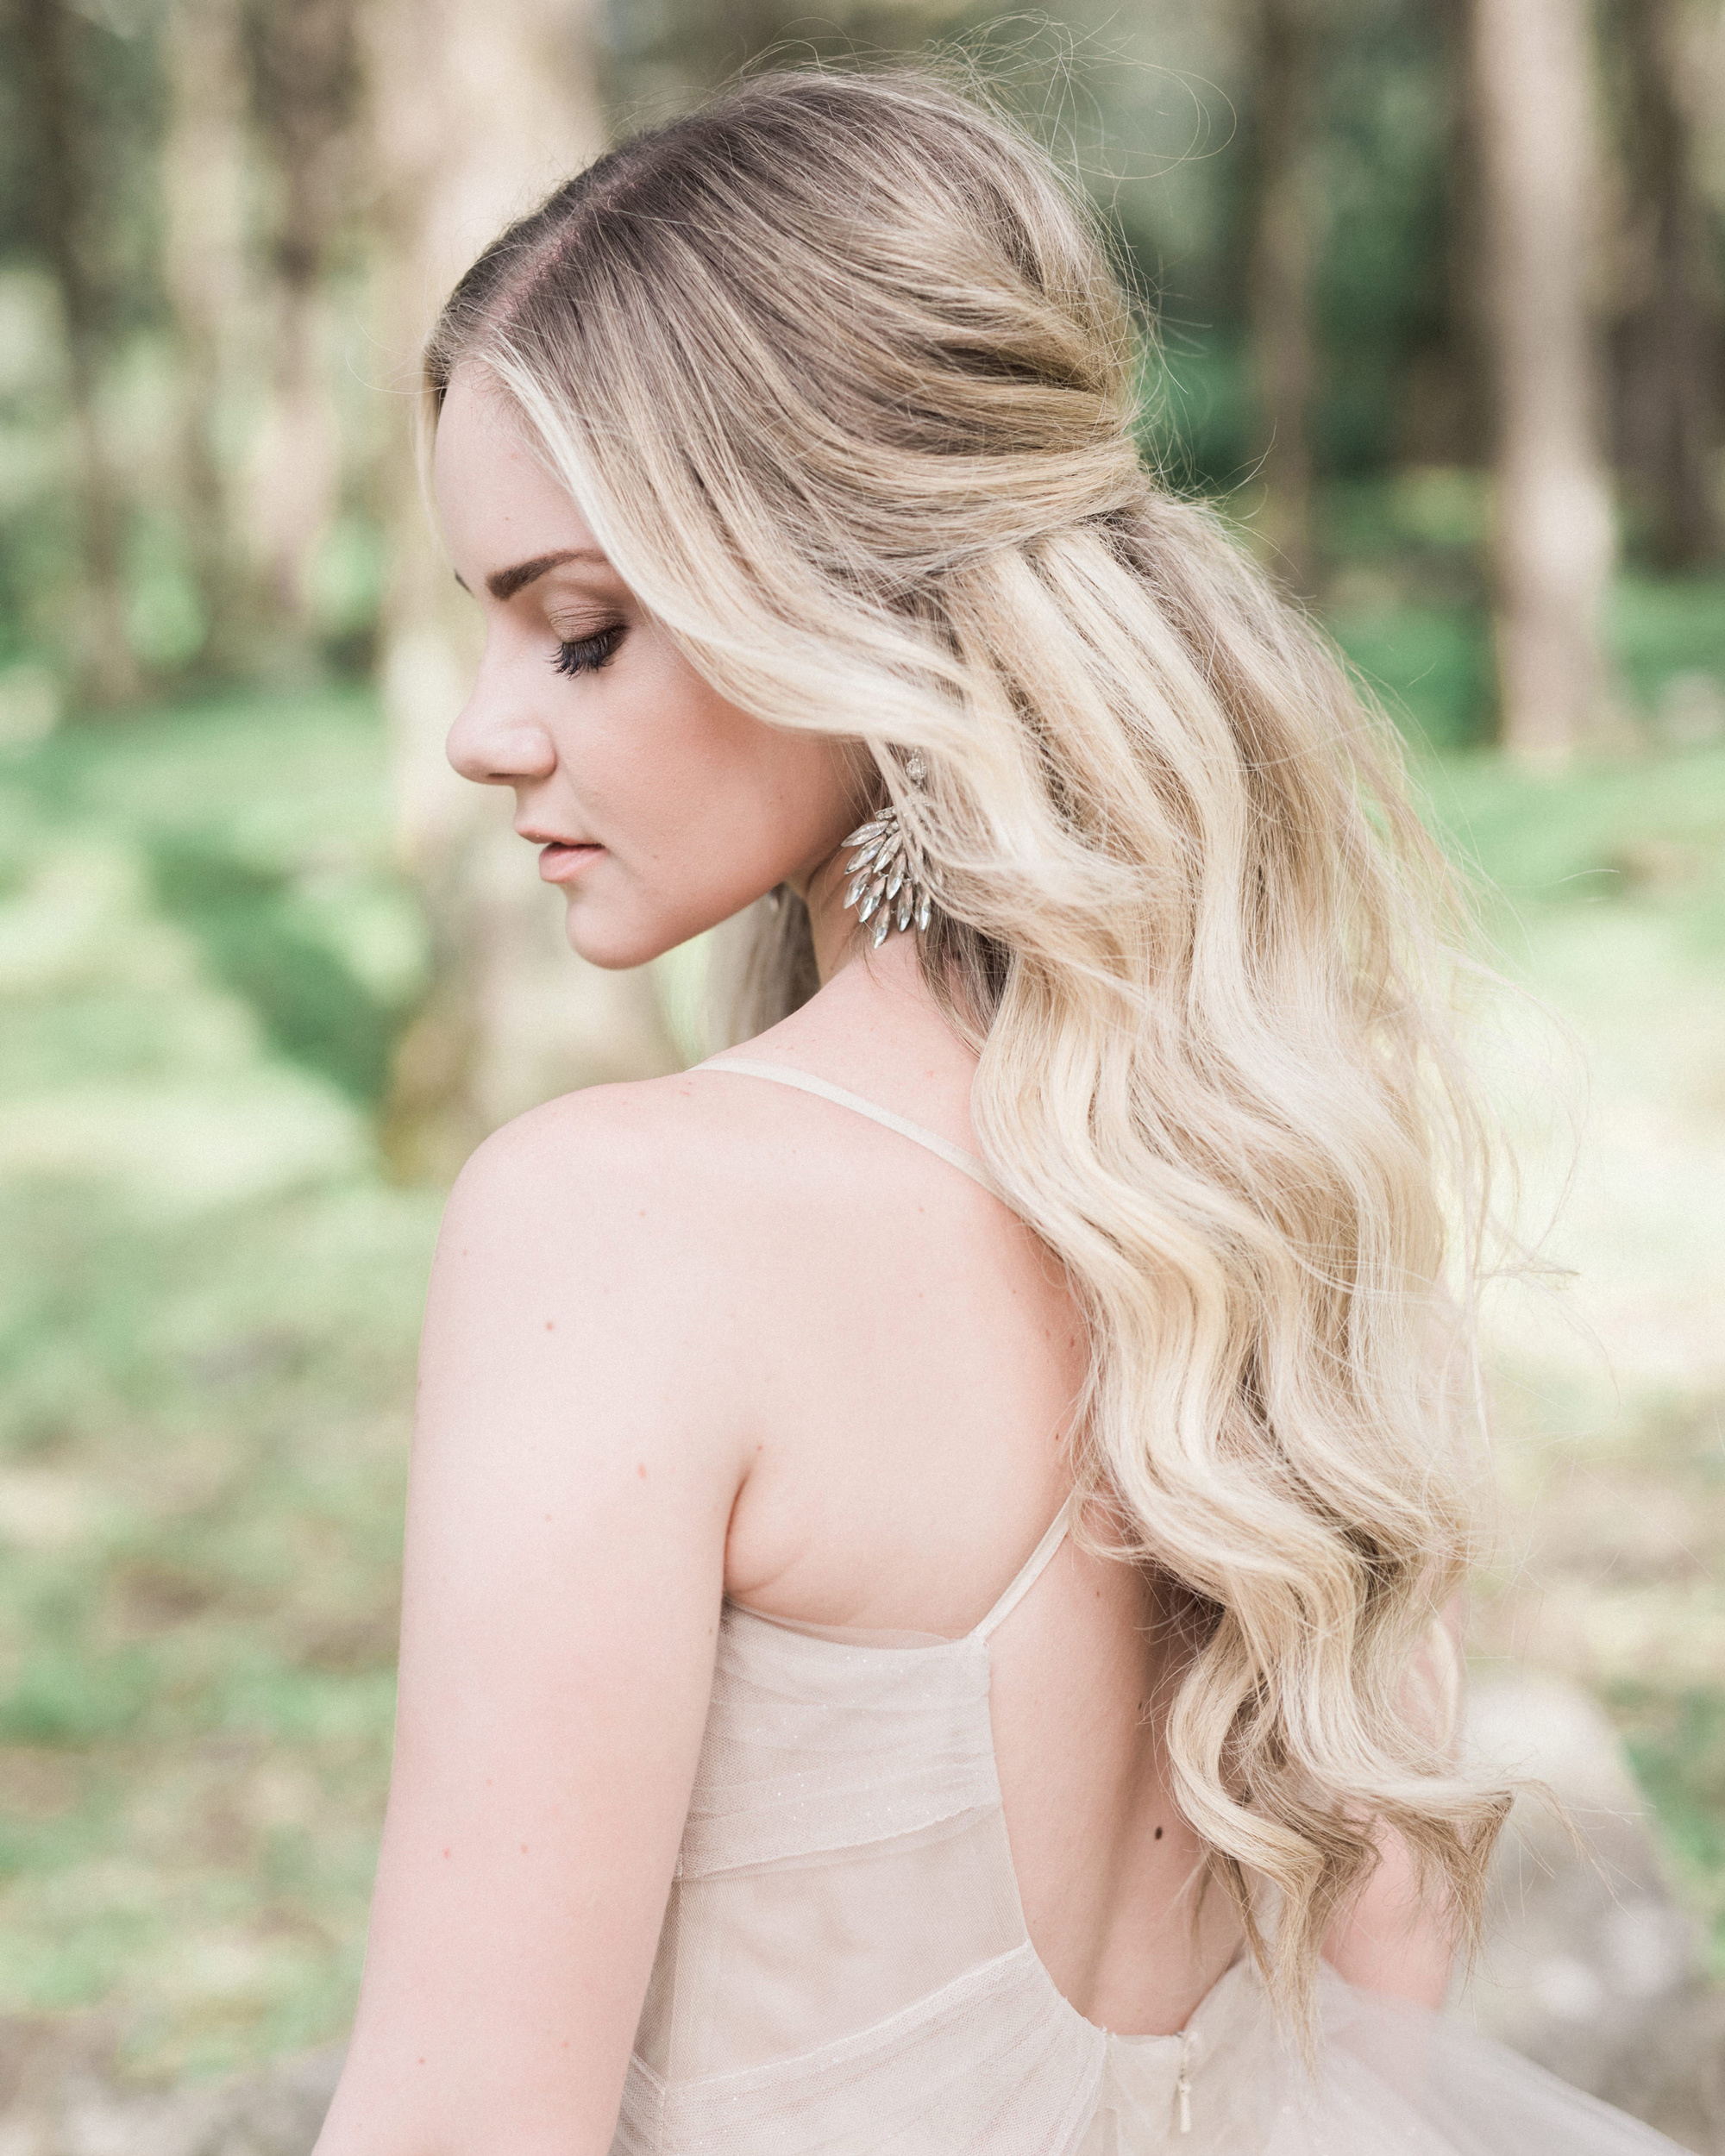 Wedding Hairstyles Down Curly: Half-Up, Half-Down Wedding Hairstyles We Love